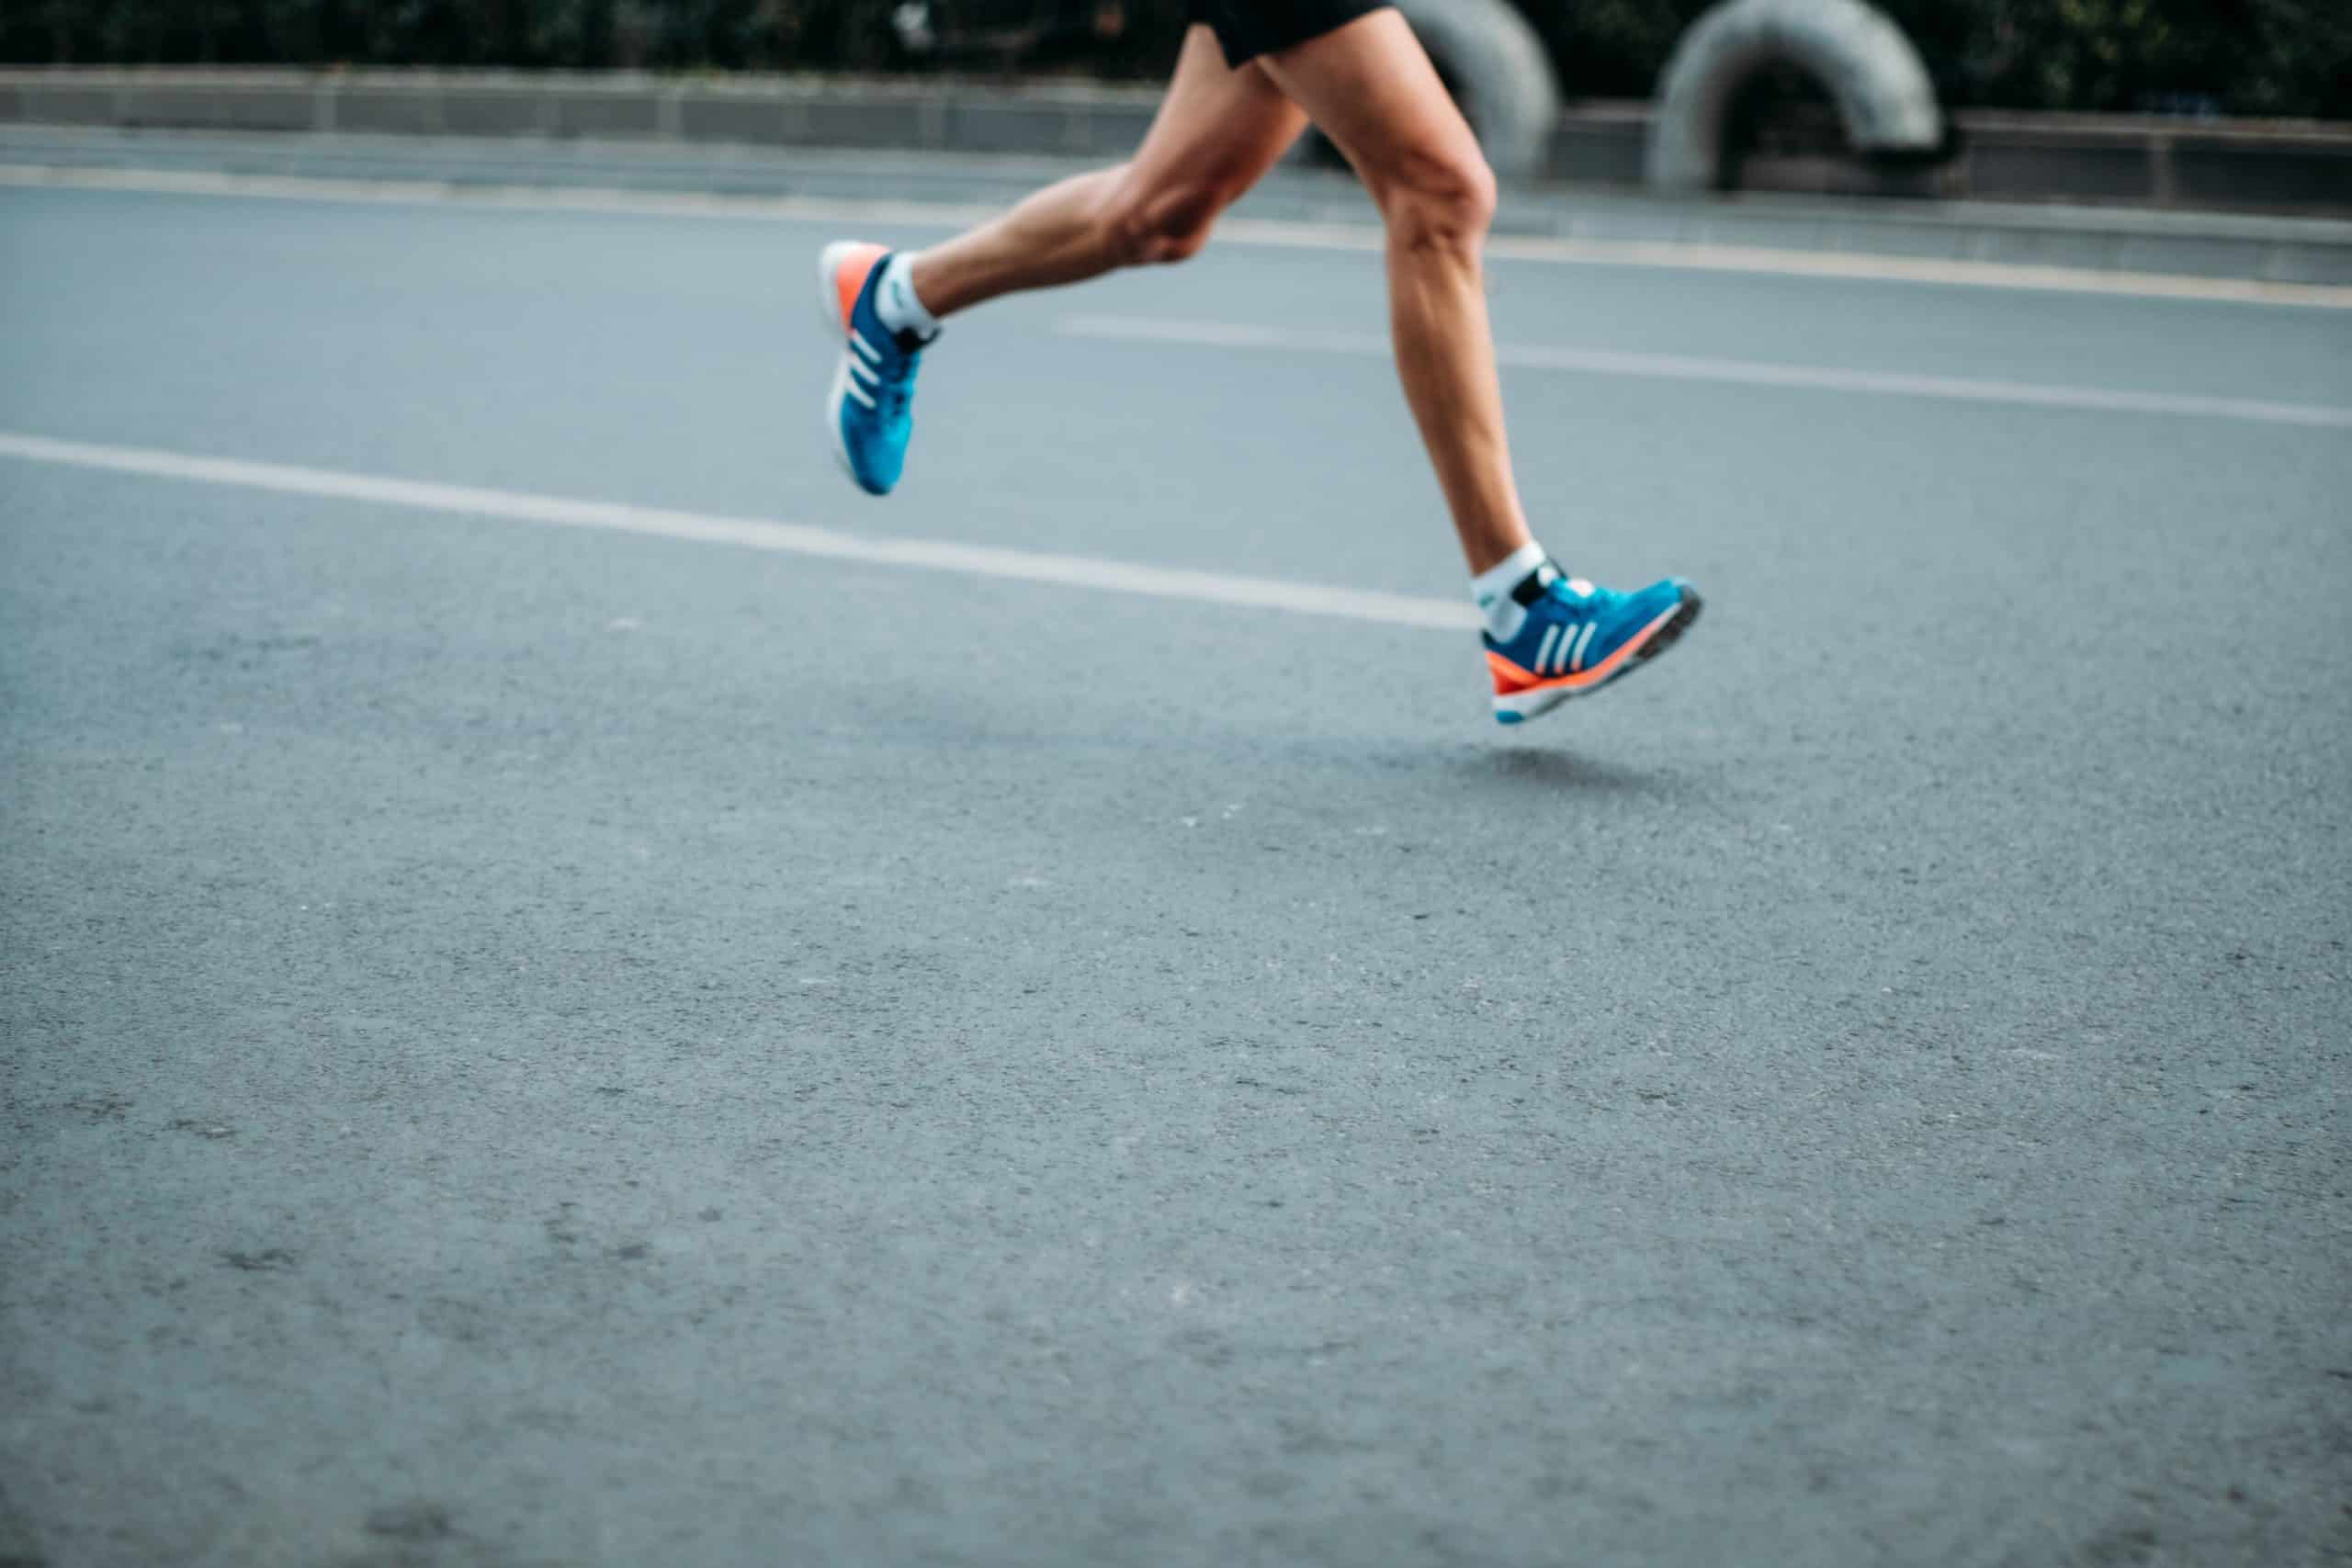 Marathon Training For A Successful Race